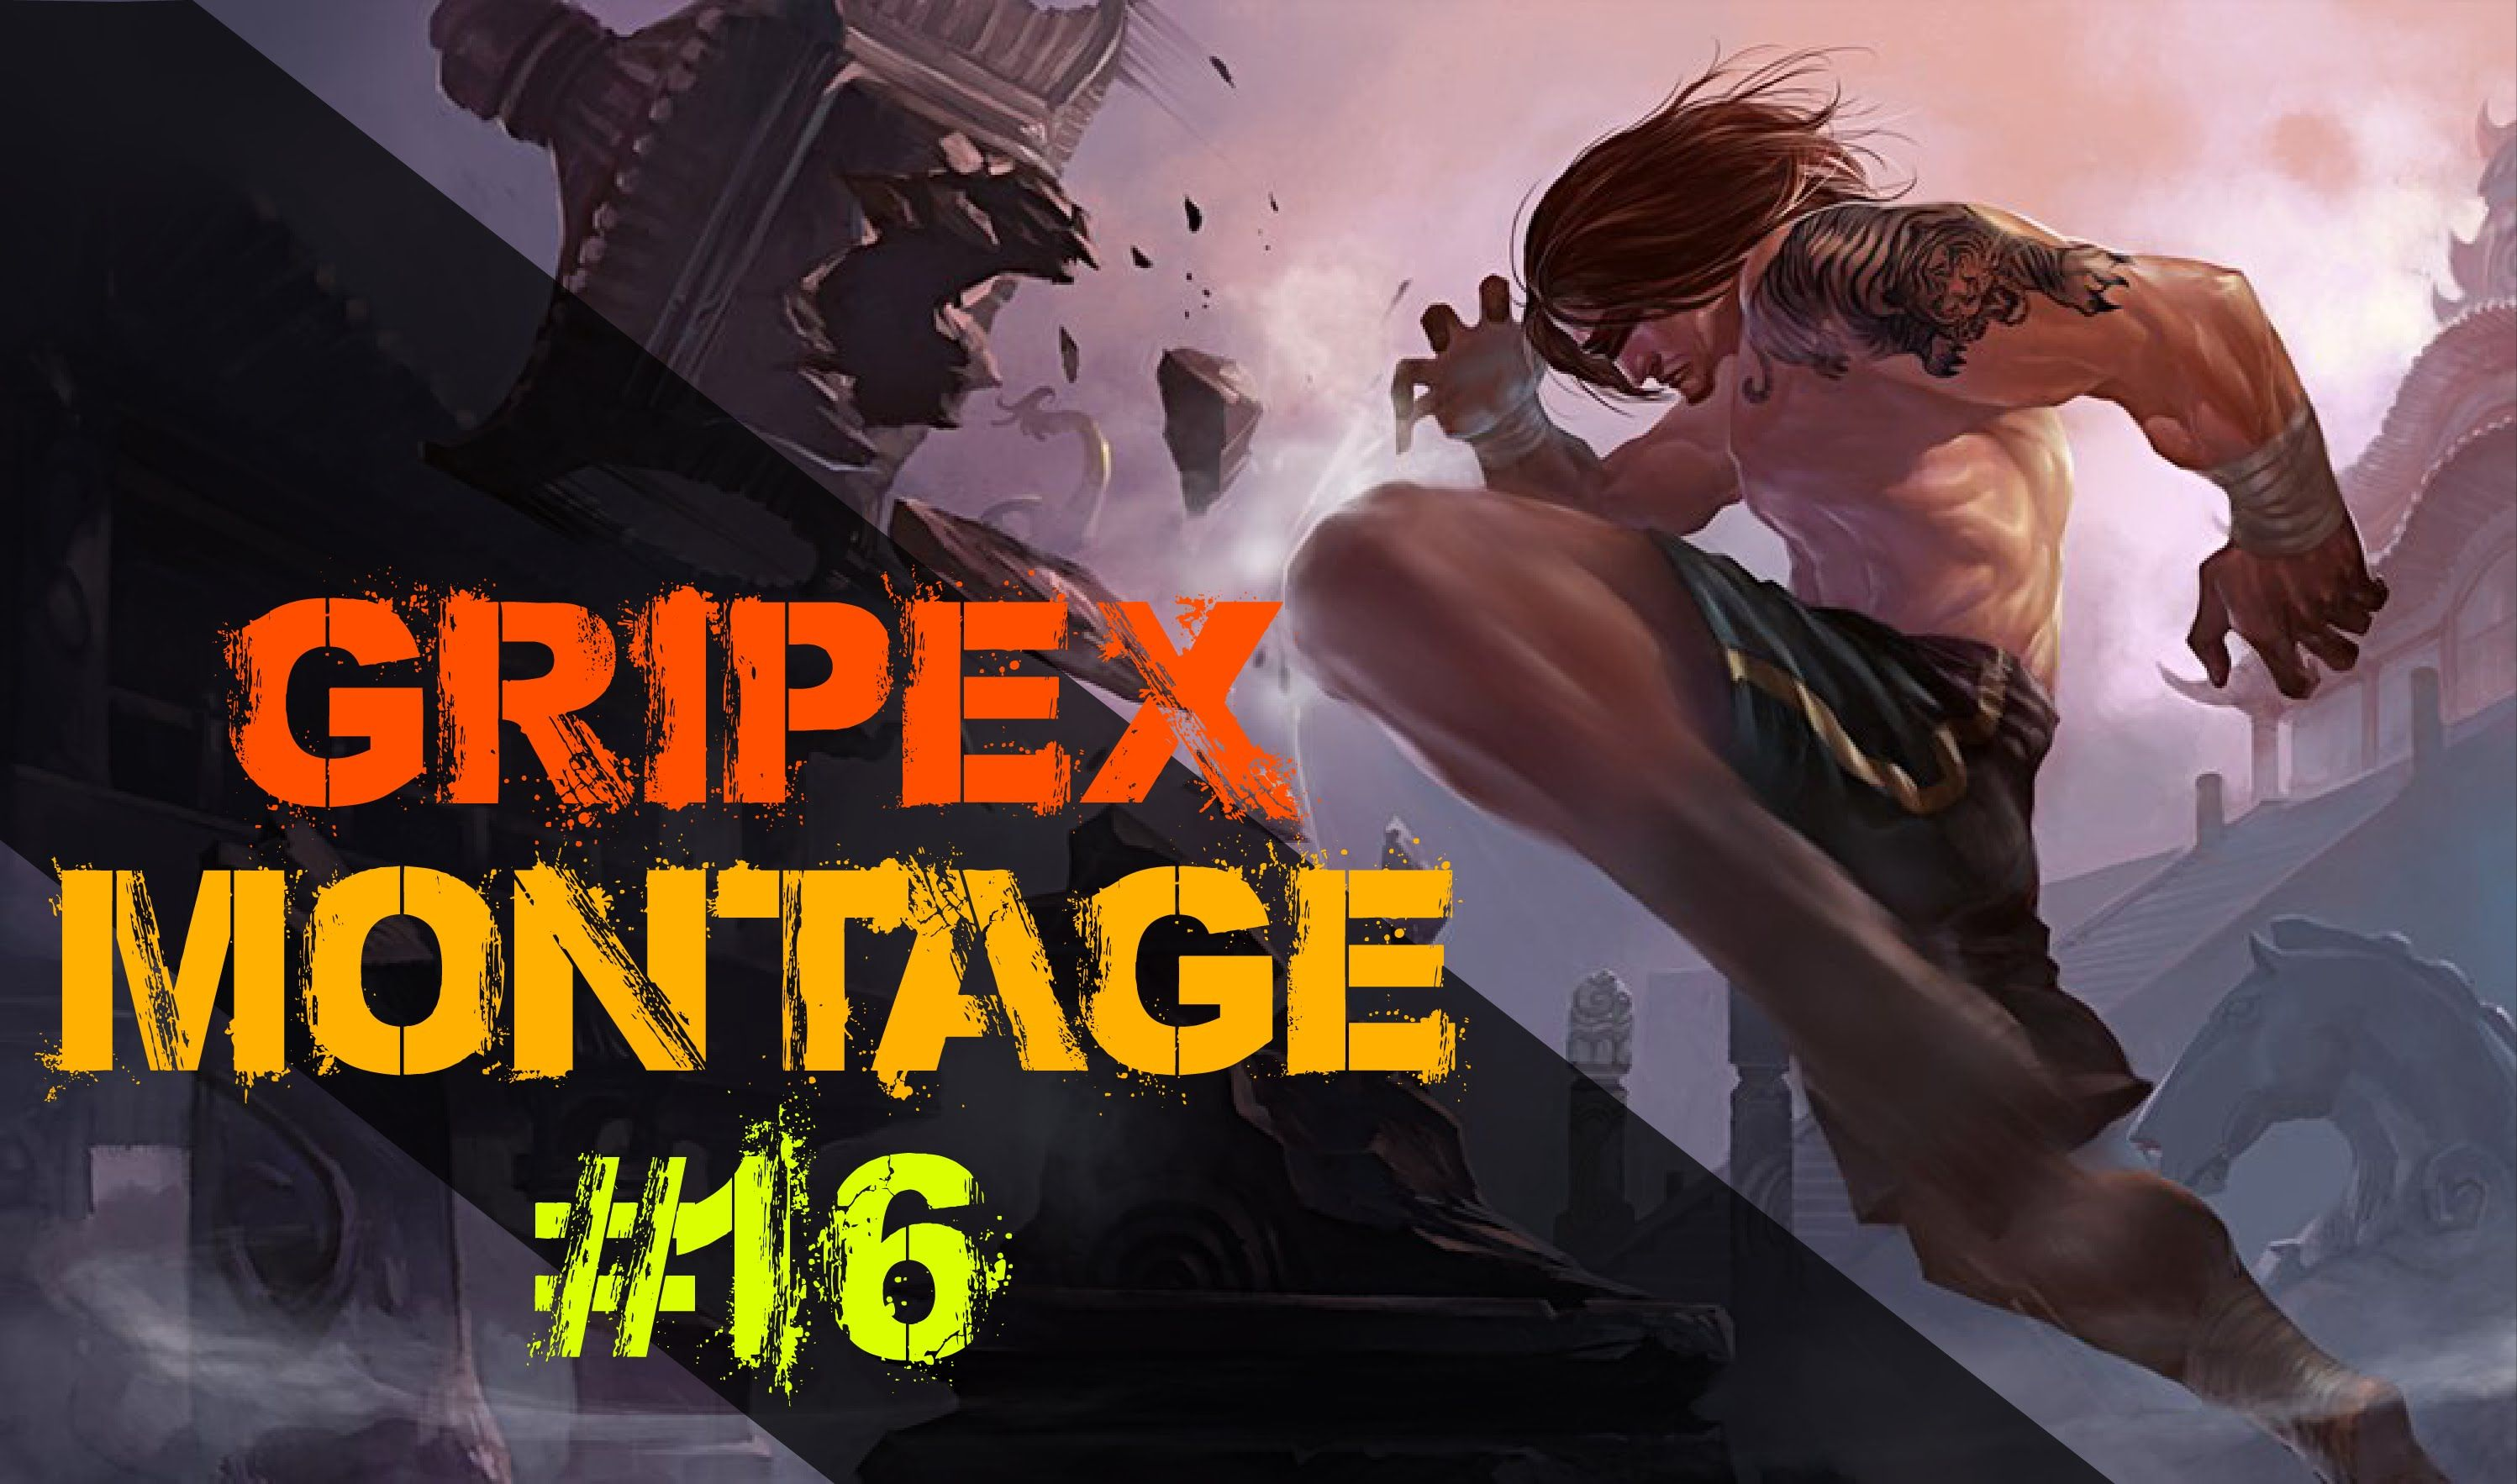 Gripex Lee Sin montage #16! Simply Subscribe and get yourself updated~ Join us on Facebook: facebook.com/ProPlaysGame/ Twitter: twitter.com/Pro_Plays_Game ==...